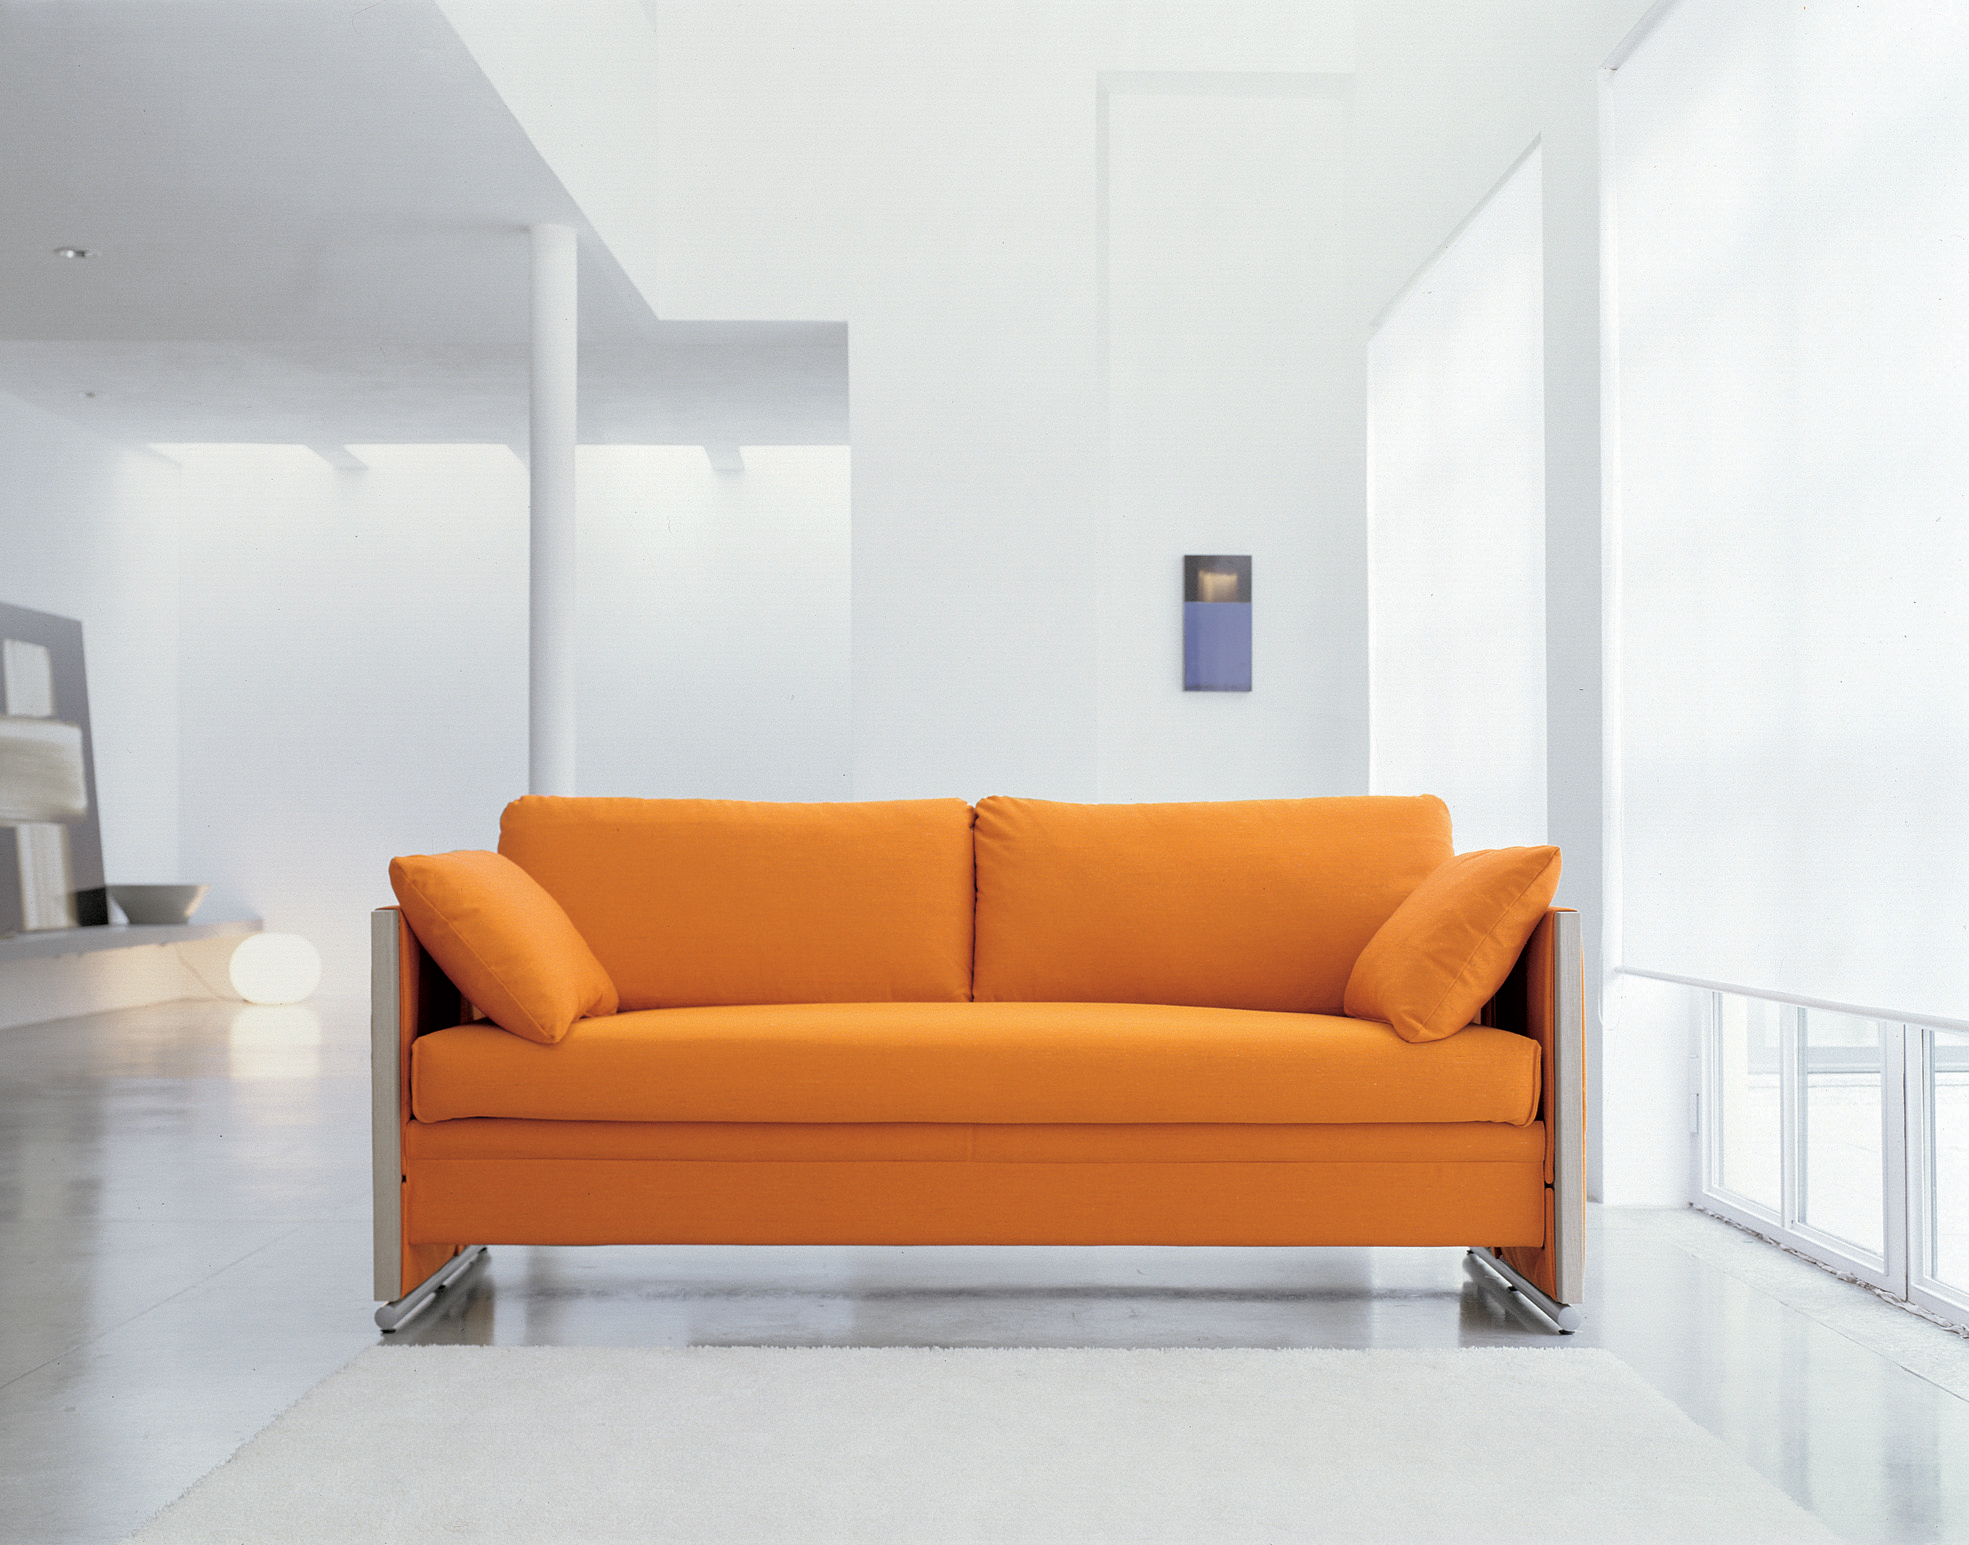 Orange Sofa As Cheerful Furniture: Simple Modern Orange Sofa Chrome Accents Clean White Interior